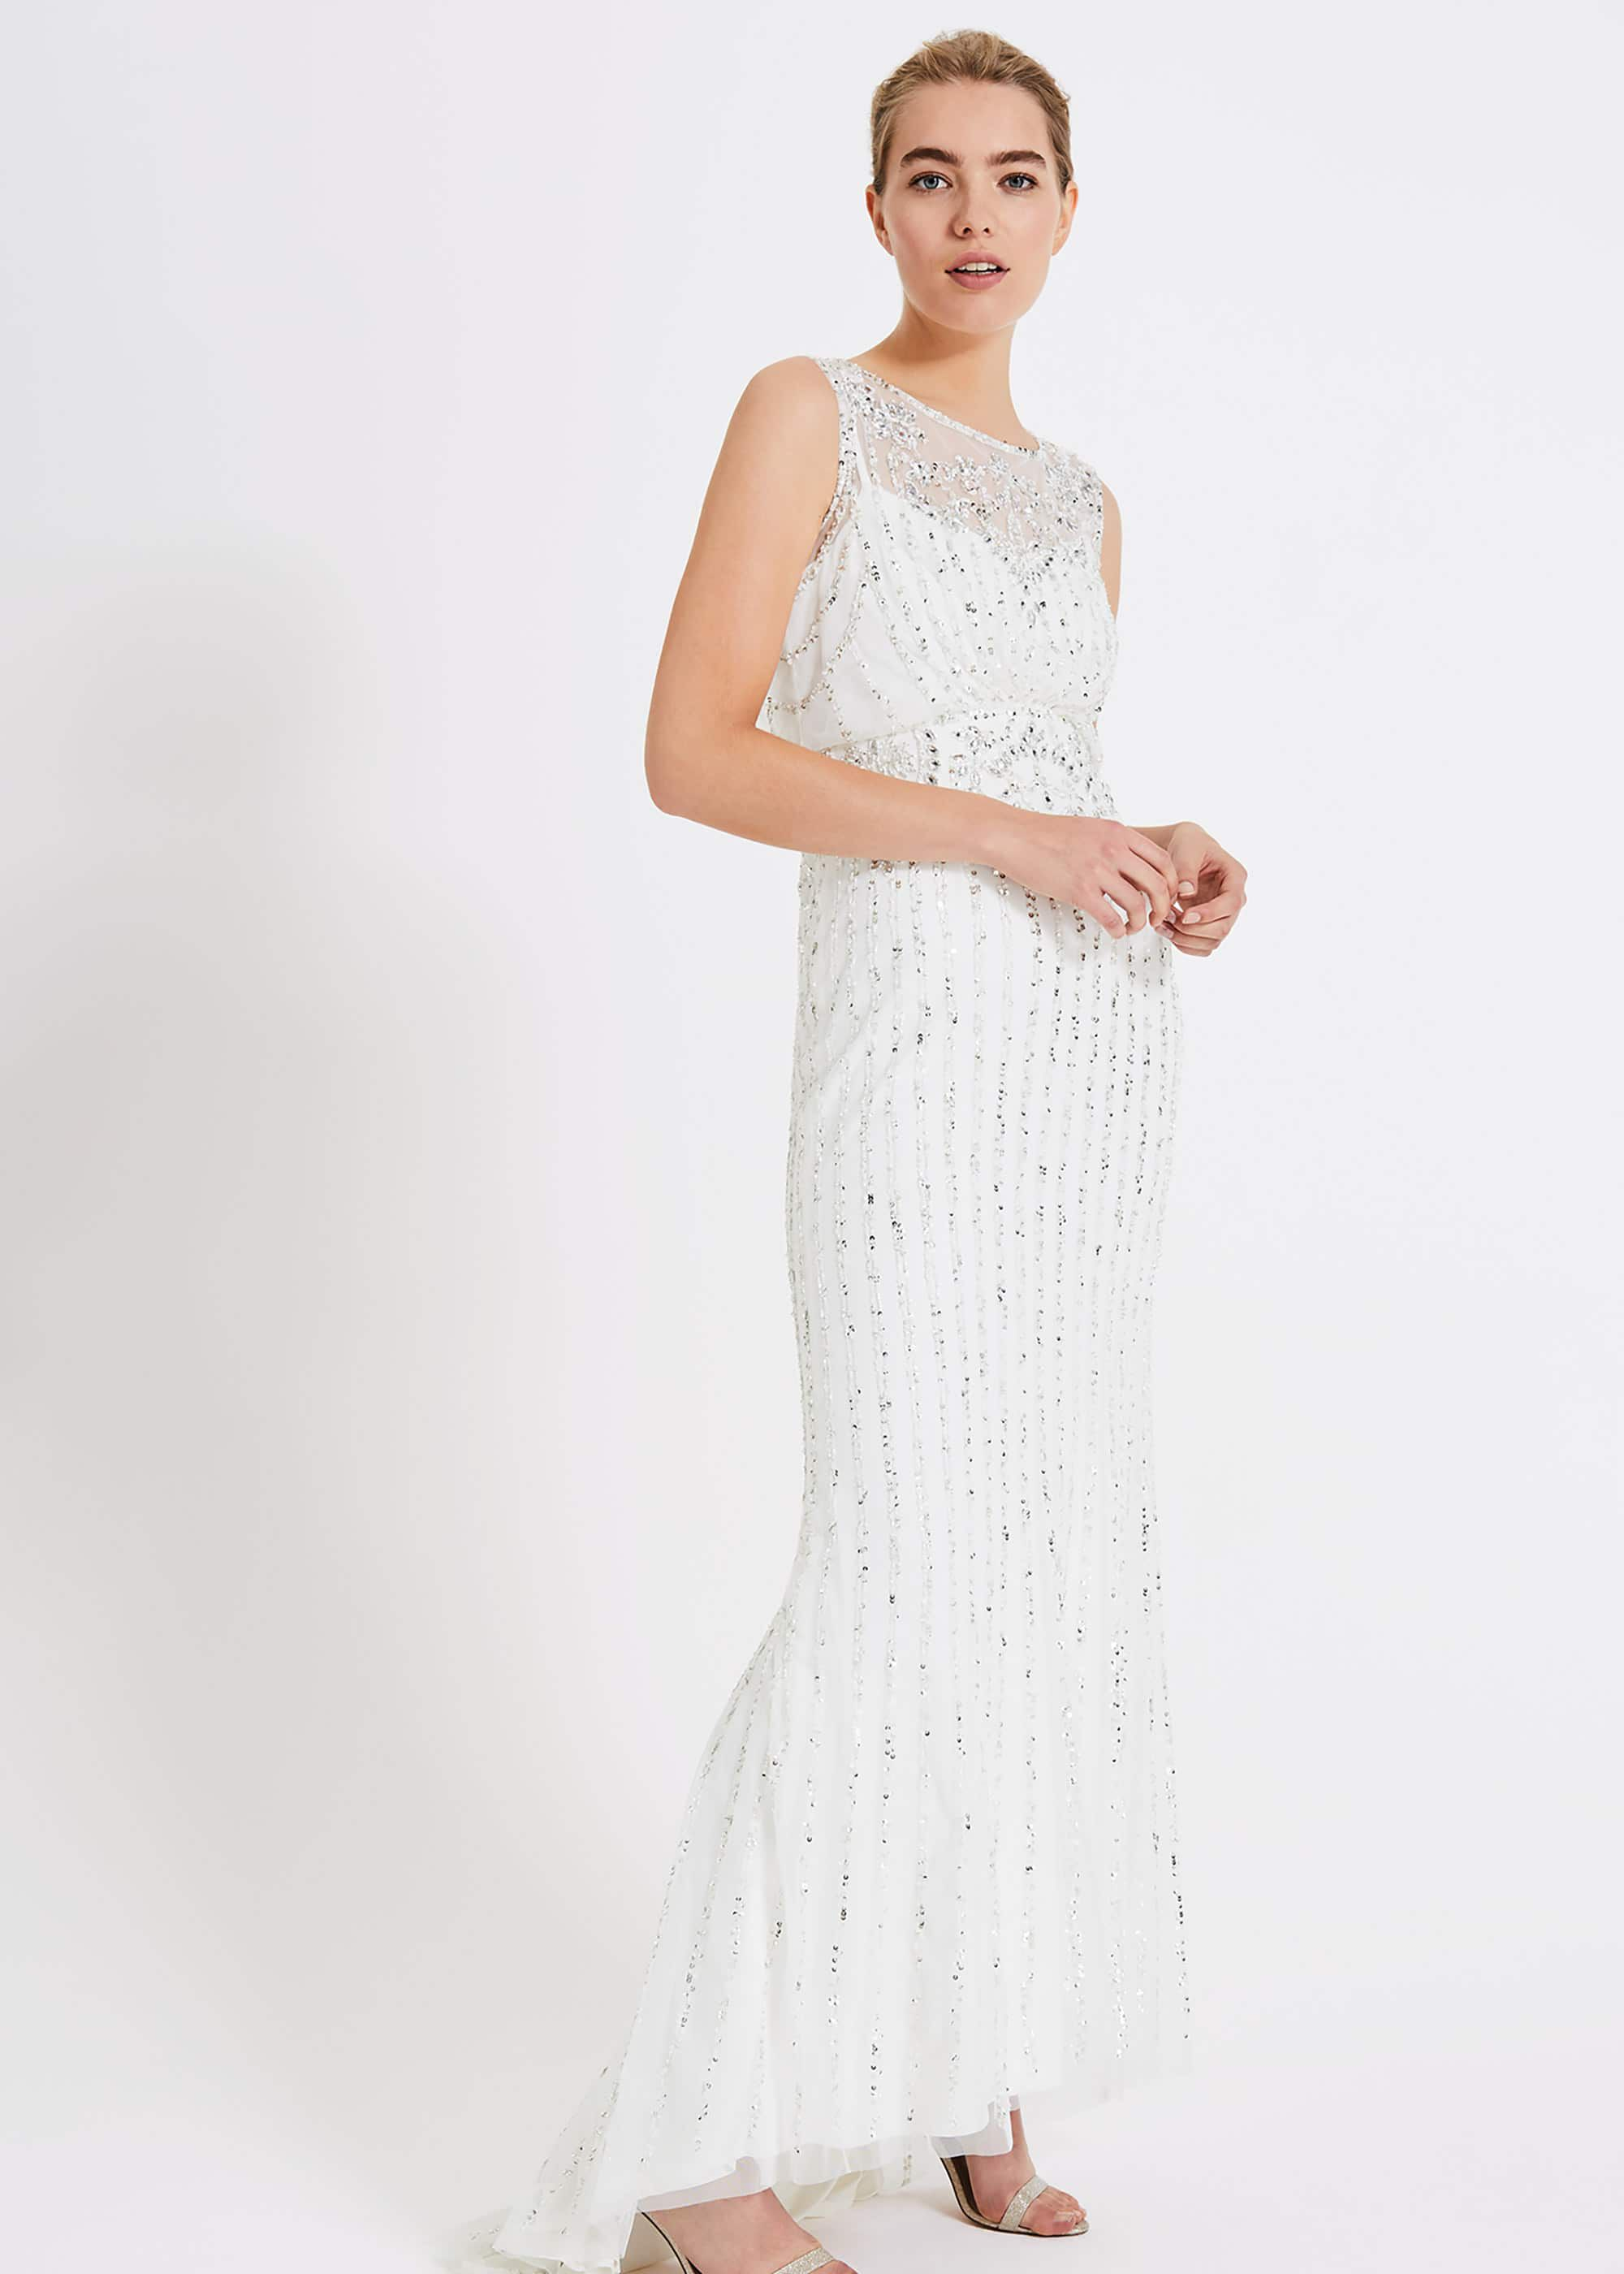 Vintage Style Wedding Dresses, Vintage Inspired Wedding Gowns Phase Eight Milly Beaded Wedding Dress White Wedding £595.00 AT vintagedancer.com